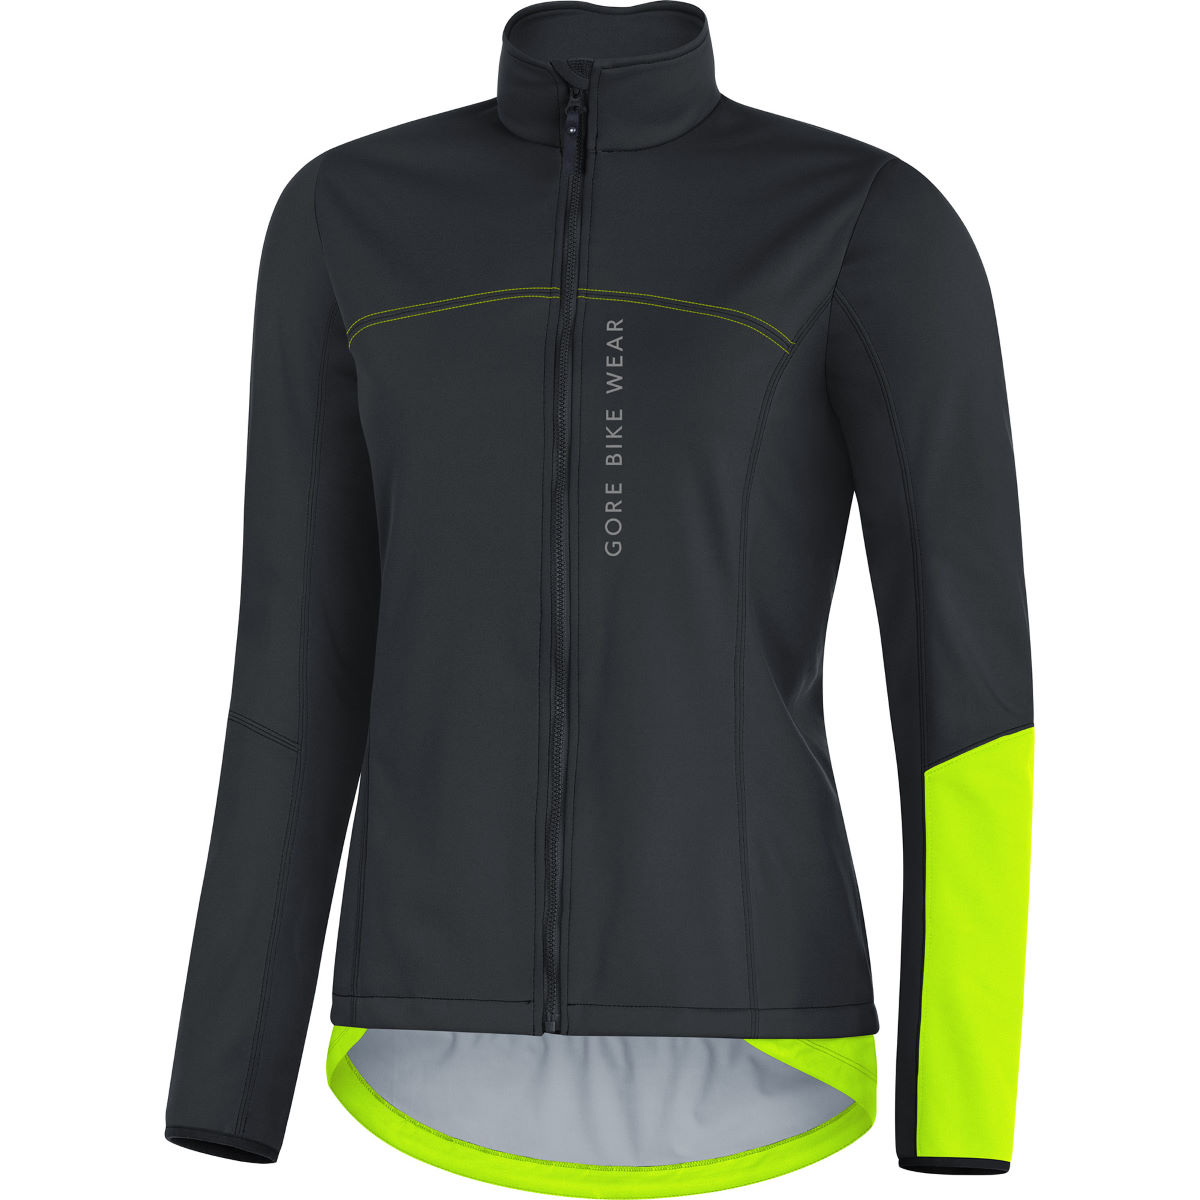 Veste Femme Gore Bike Wear Power GWS SO - X Small Black/Neon Yellow